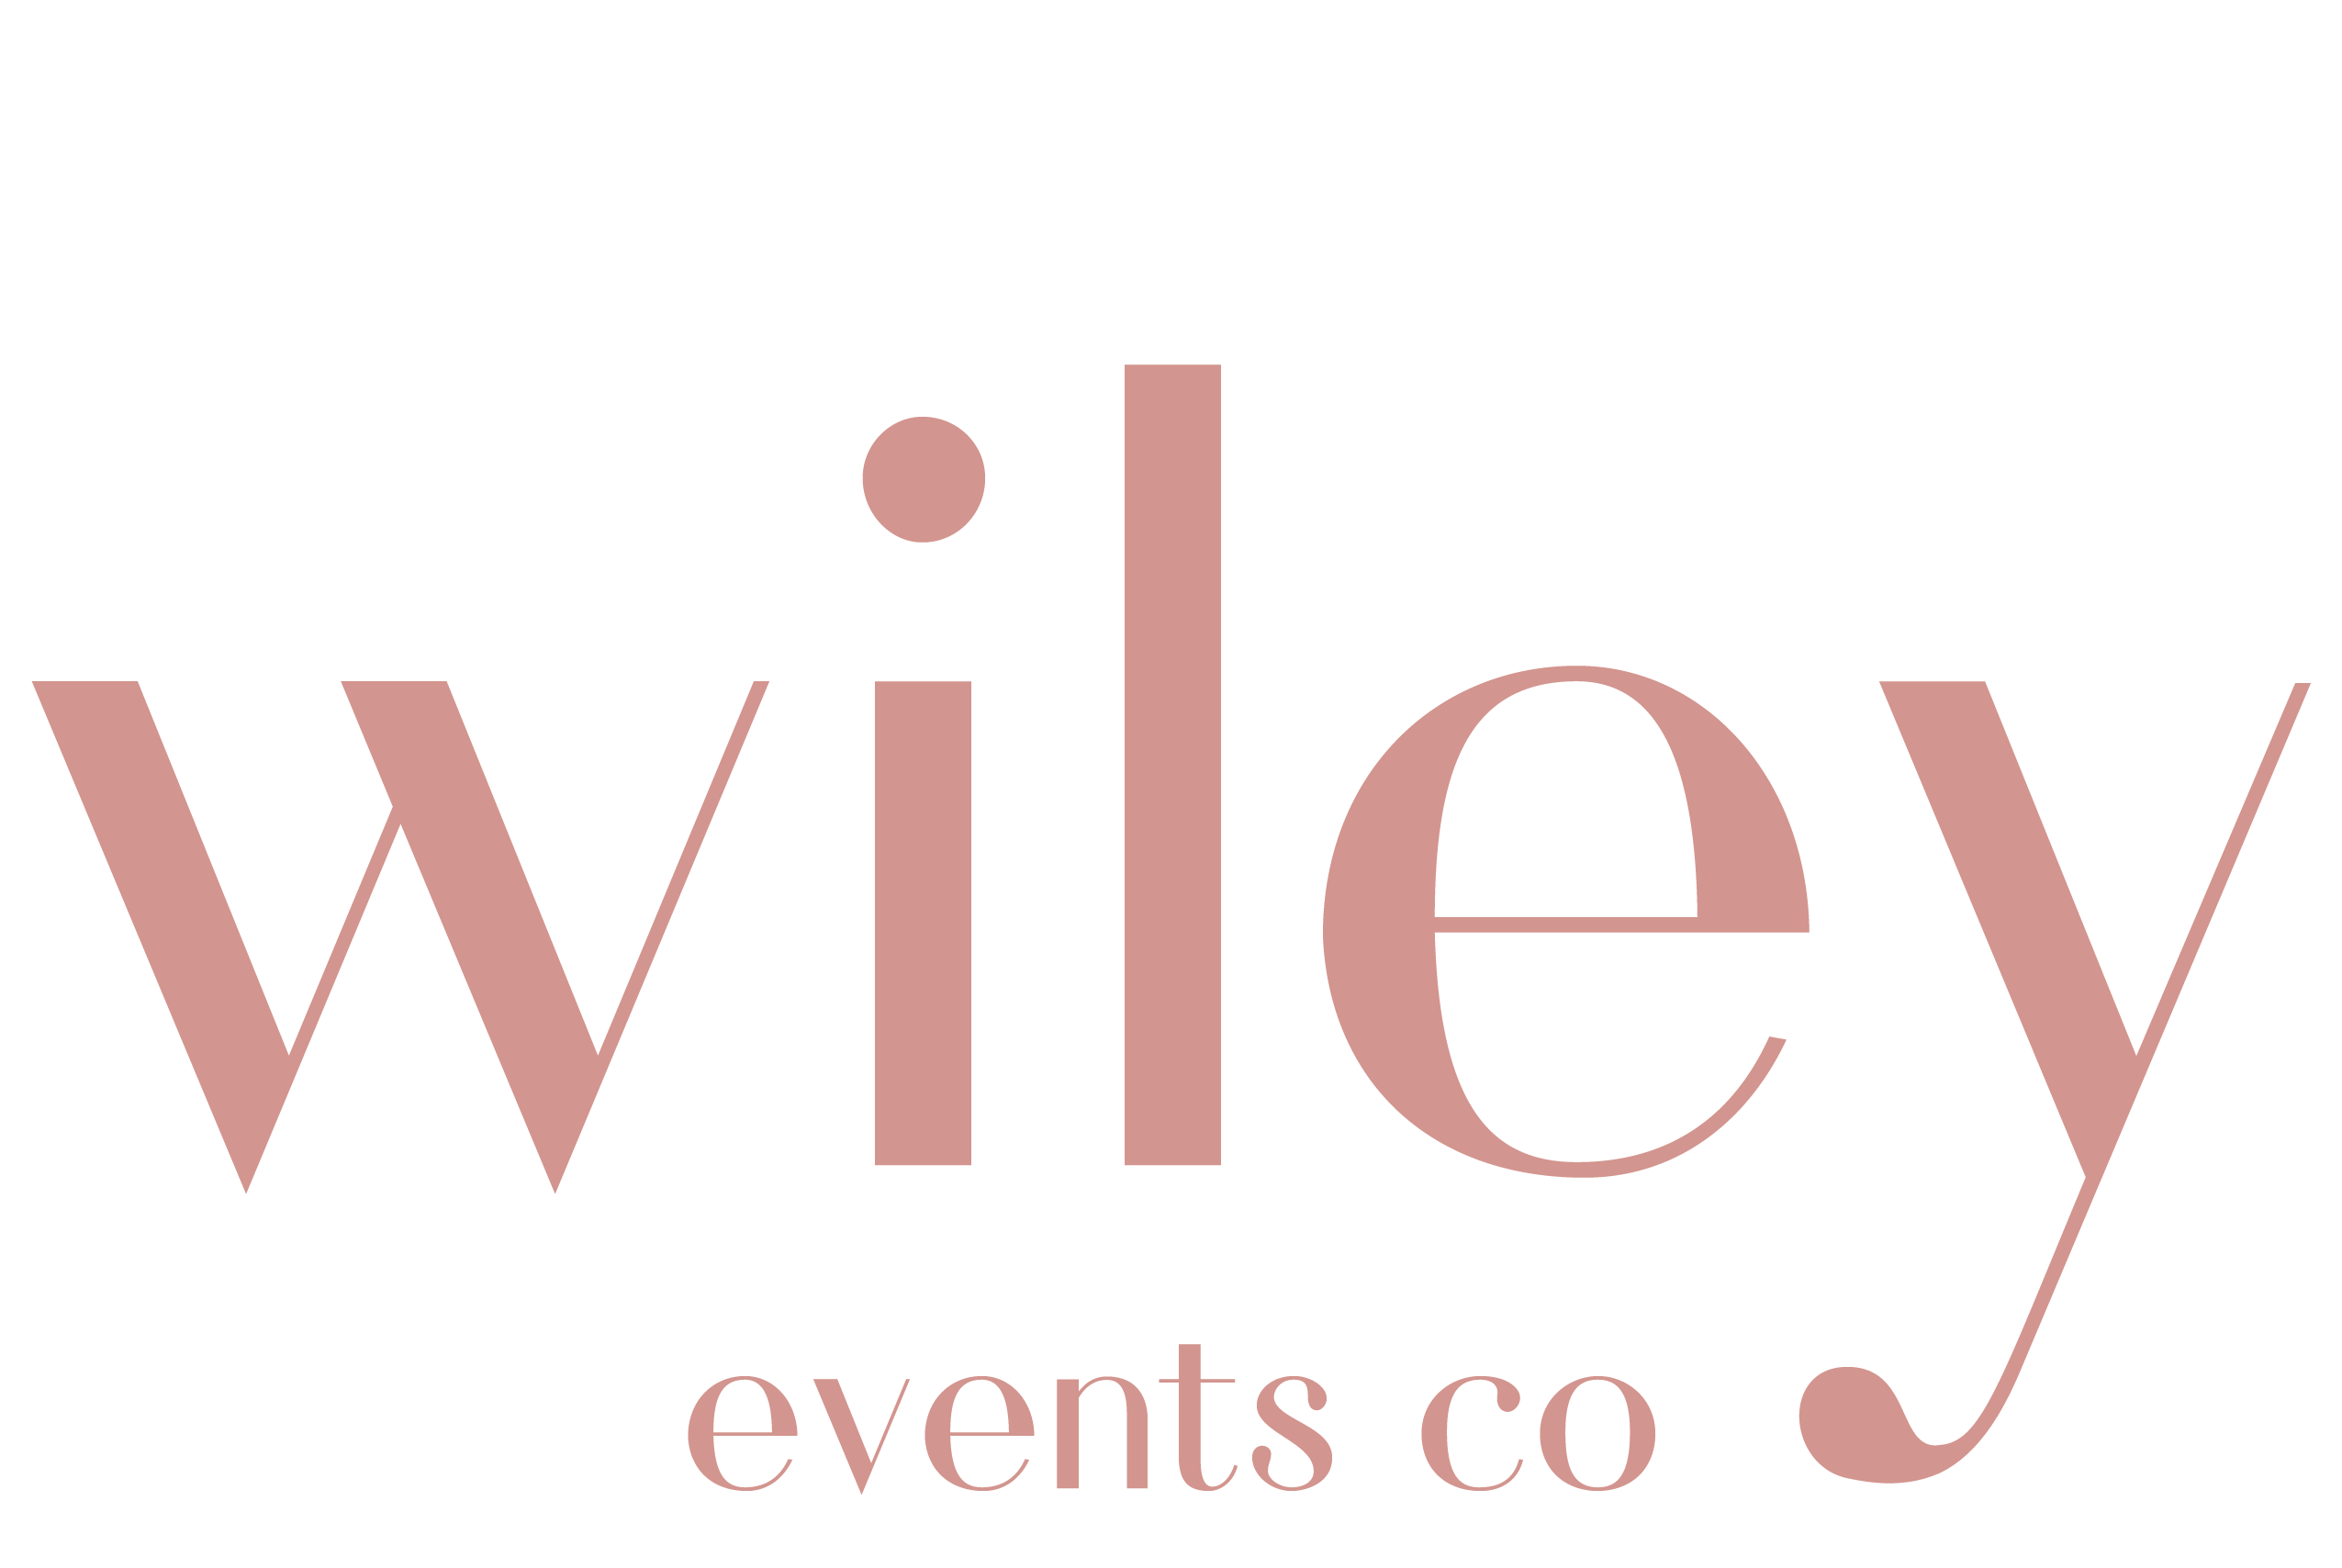 Wiley Events Co Logo